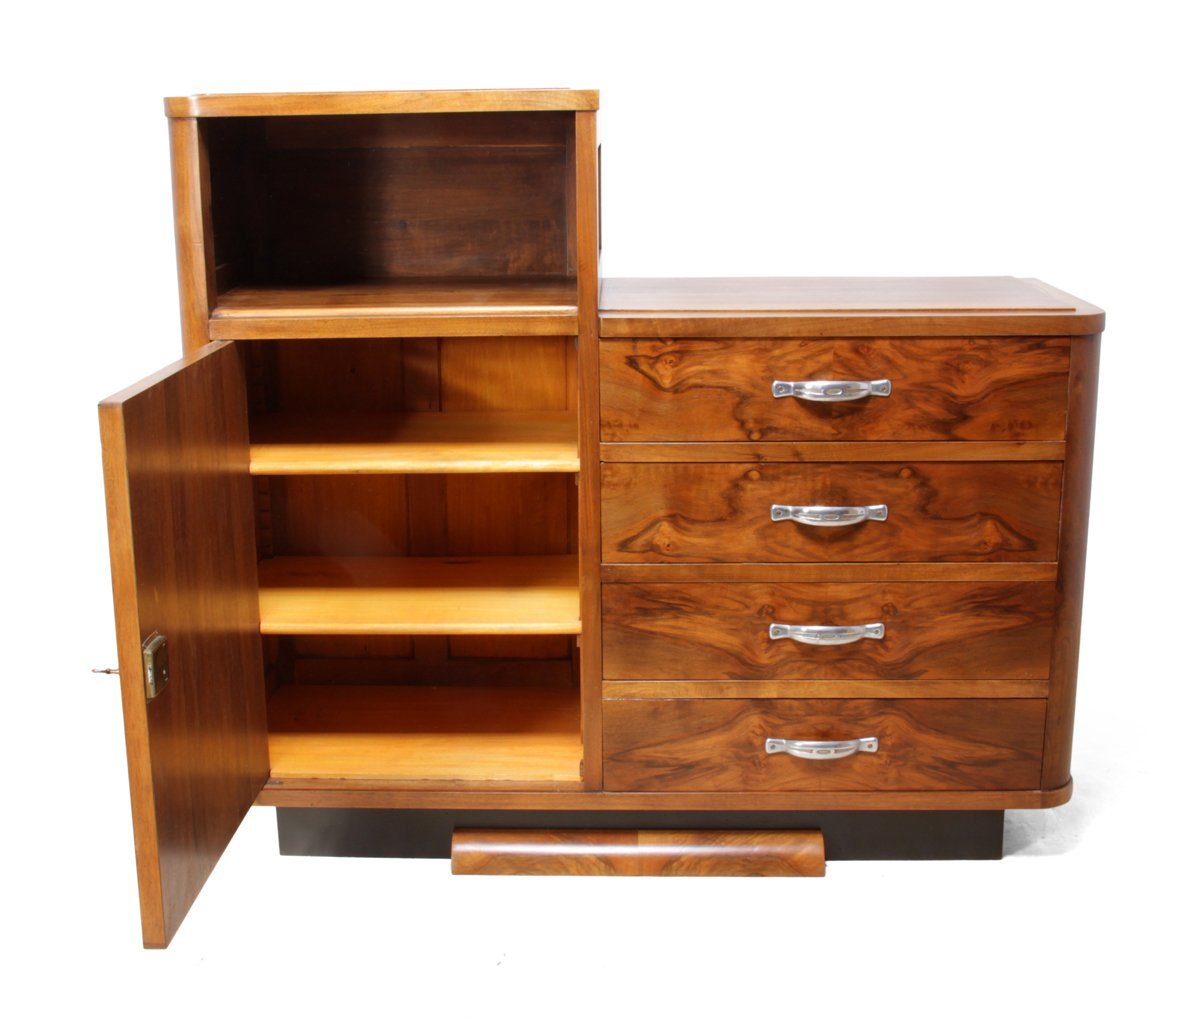 Art deco walnut cabinet 1930s for sale at pamono for 1930s kitchen cabinets for sale